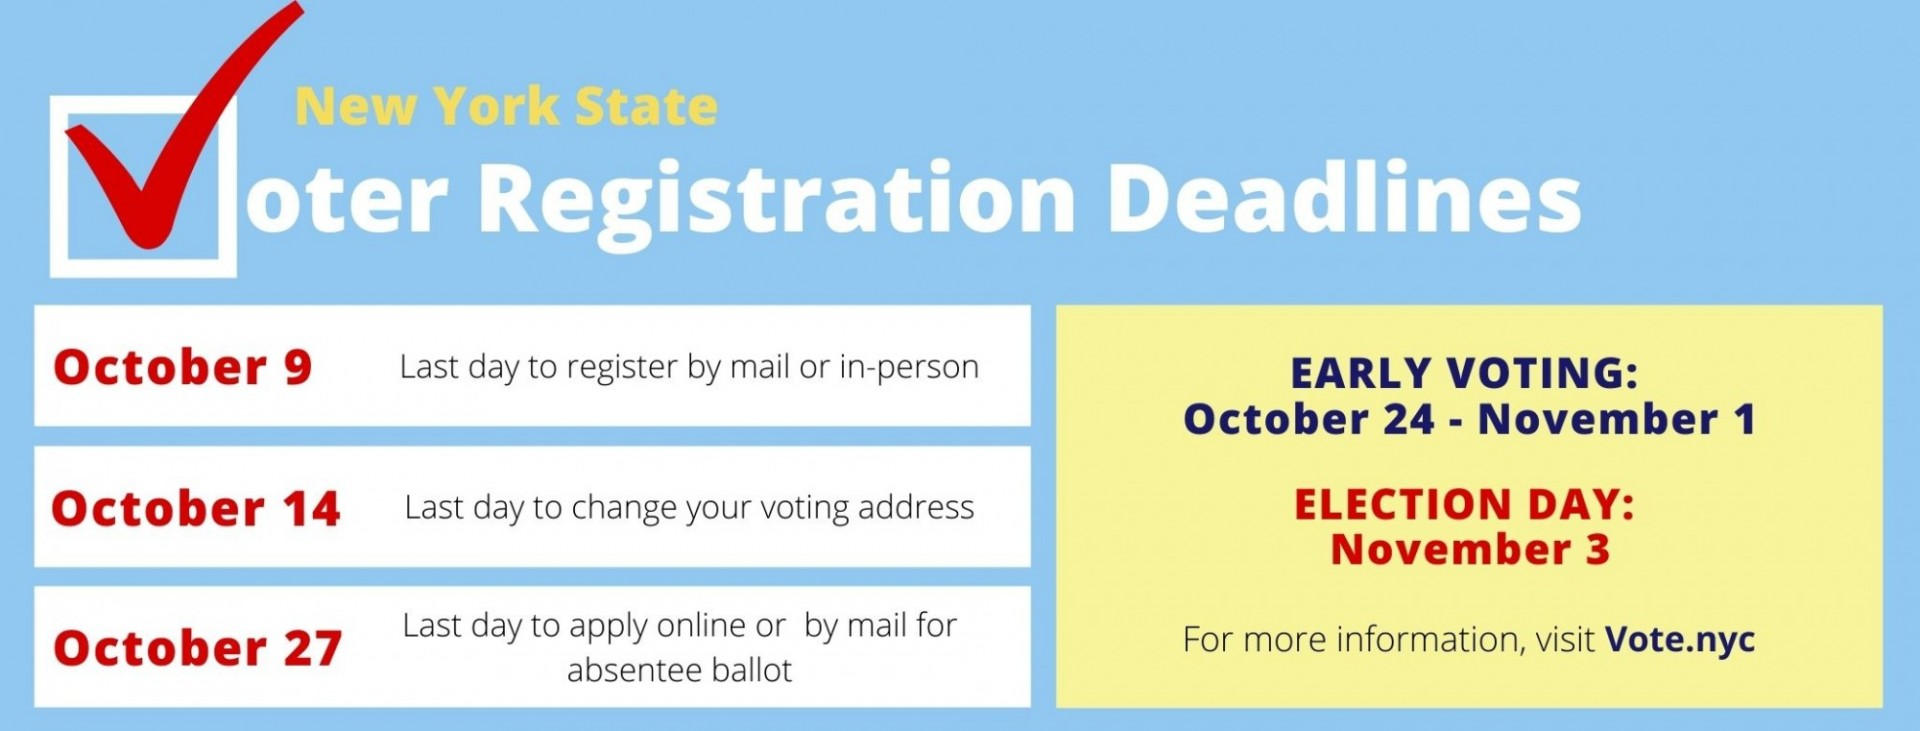 New York State 2020 Voter Registration Deadlines